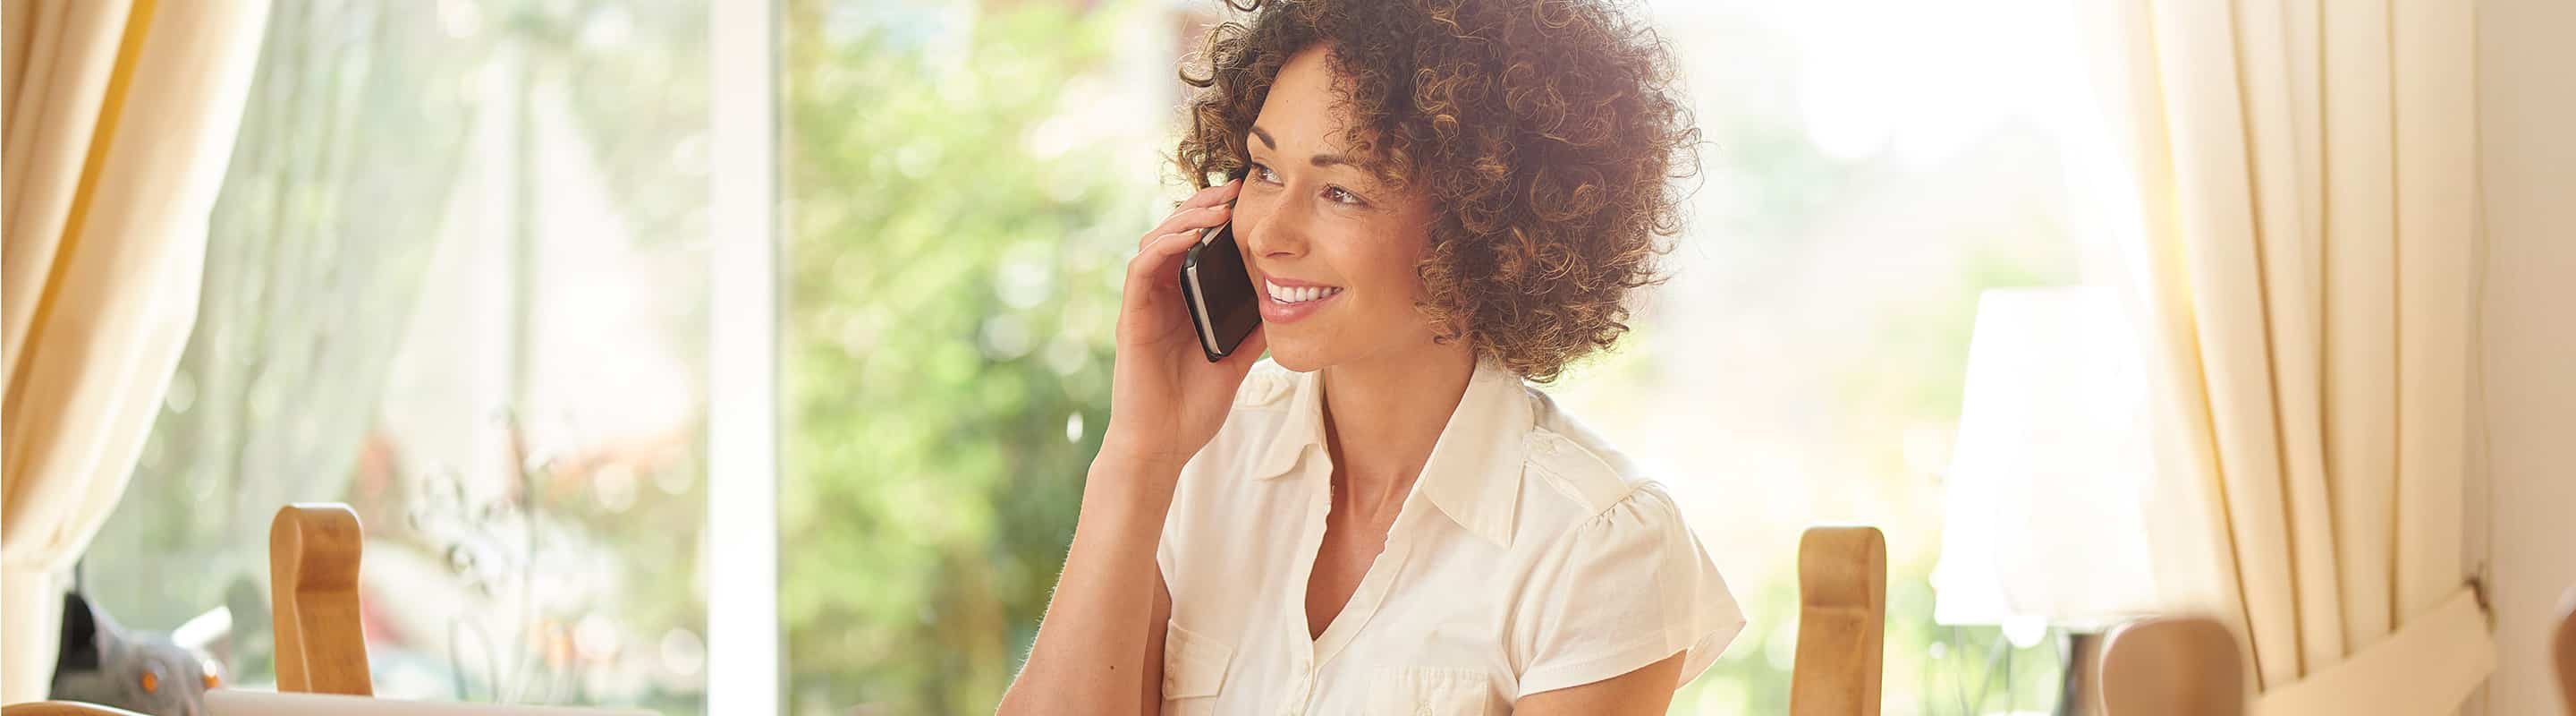 overdraft woman on cell phone - Overdraft Protection FAQs